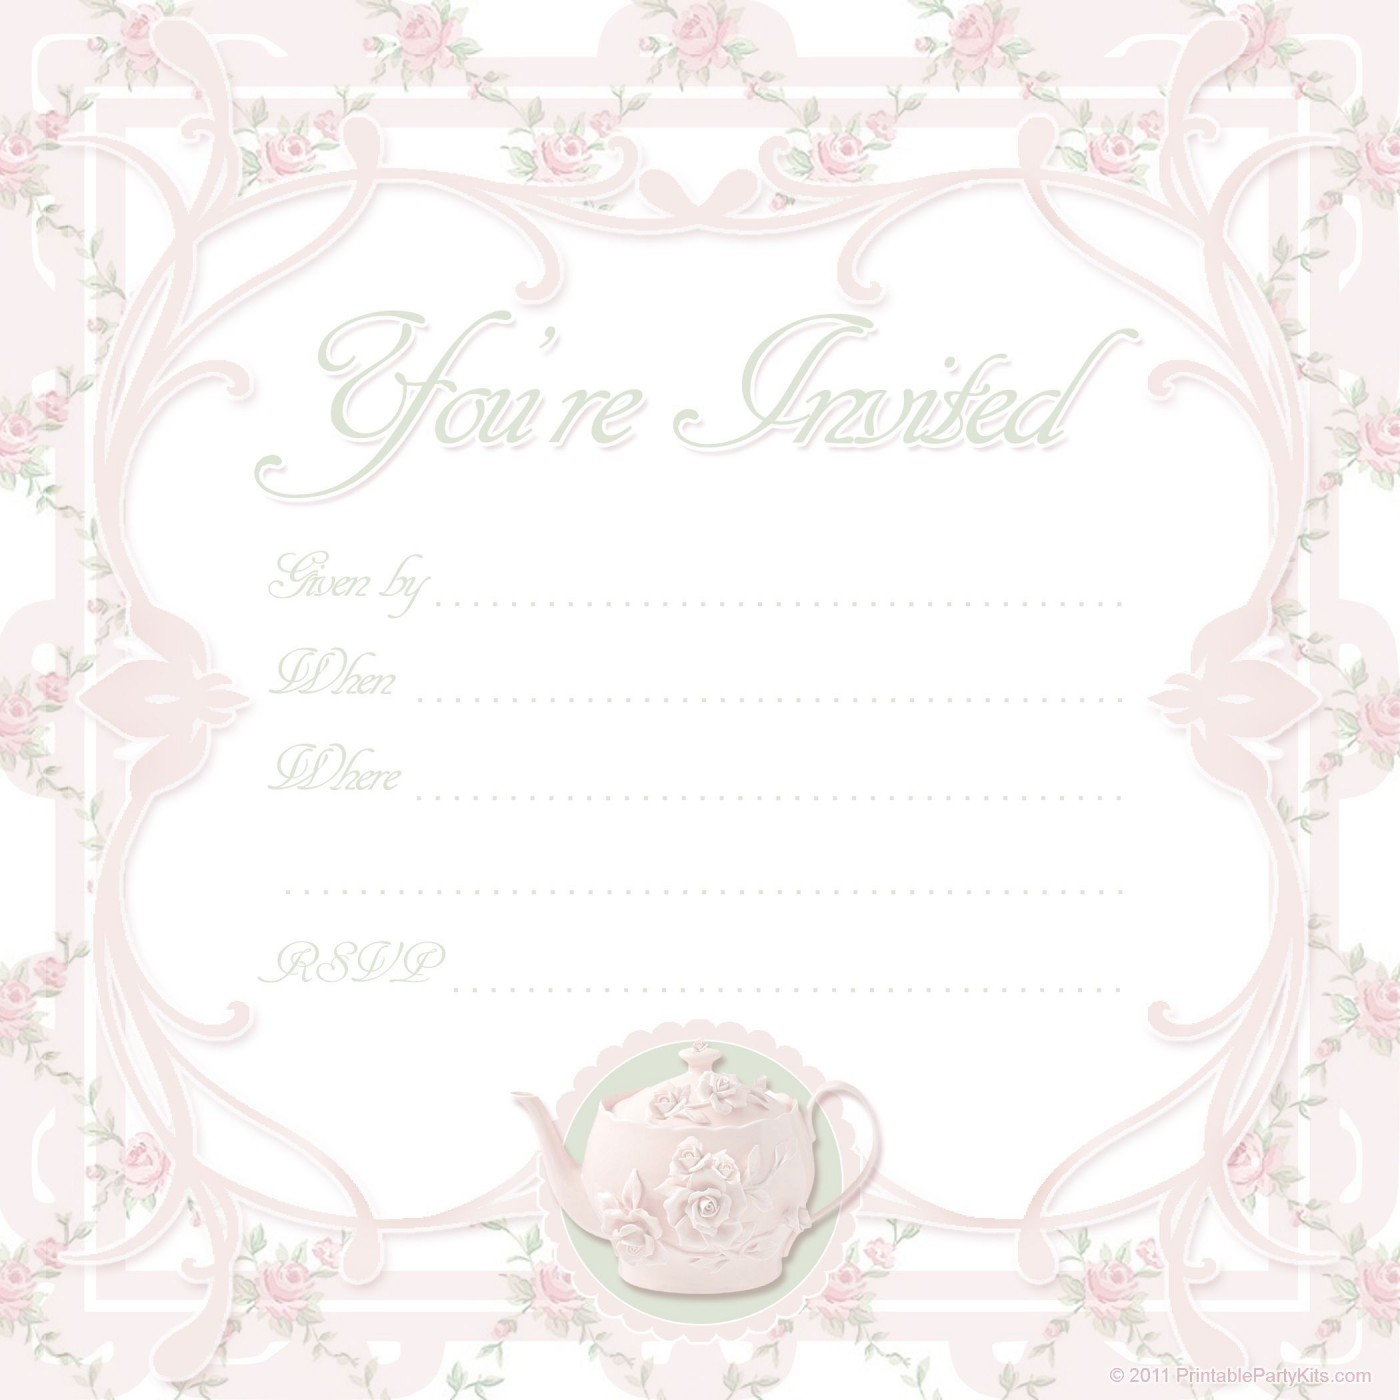 000 Awesome Tea Party Invitation Template High Def  Wording Vintage Free Sample1400